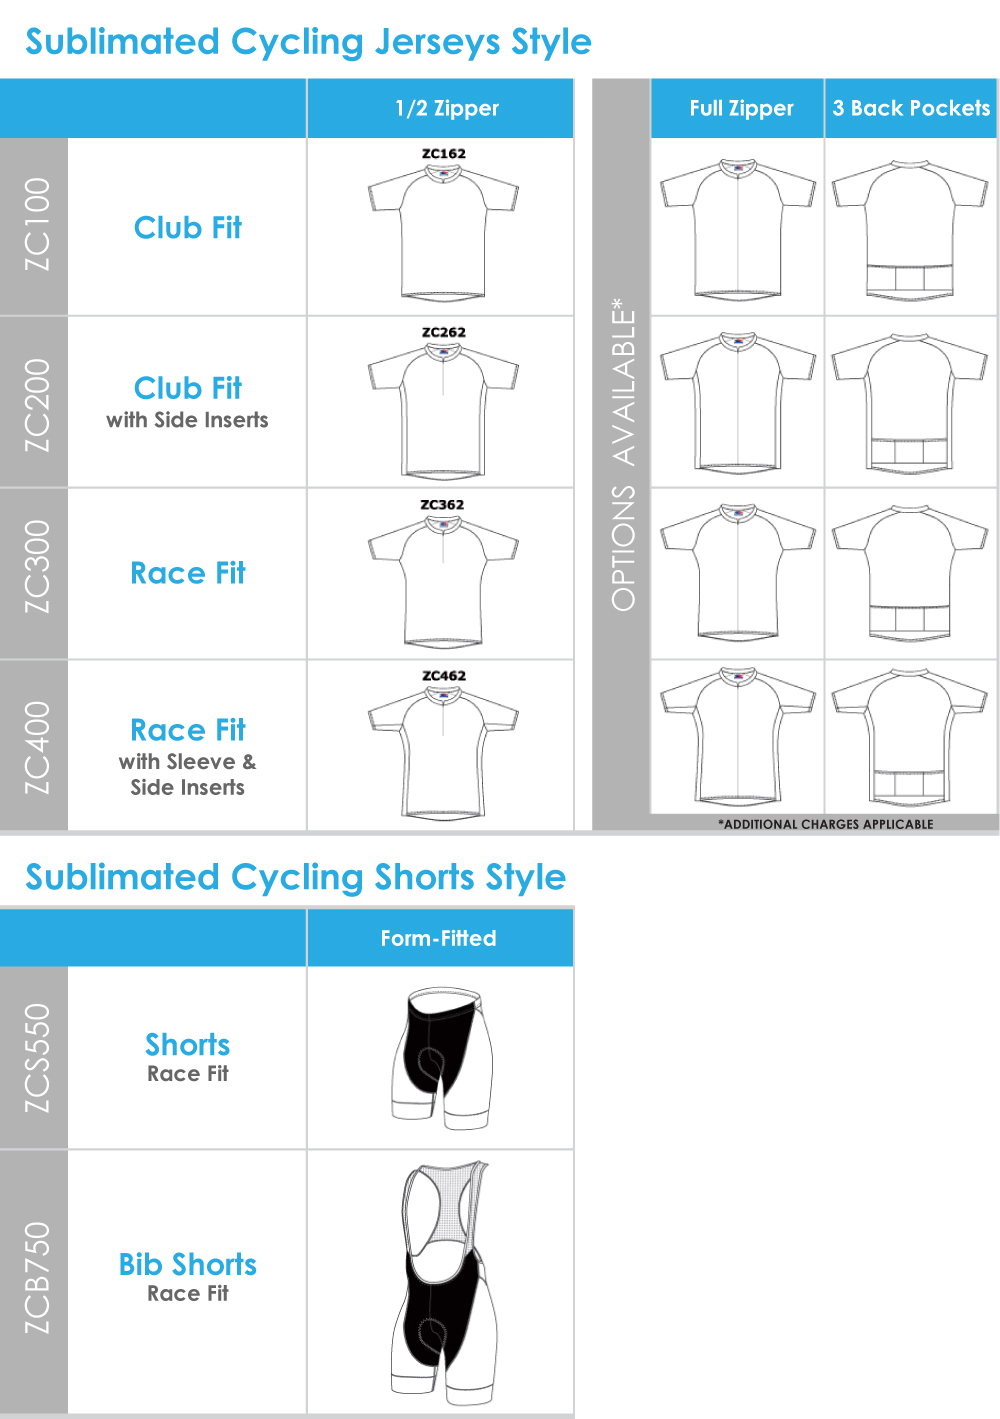 Sublimated Cycling Jersey Options